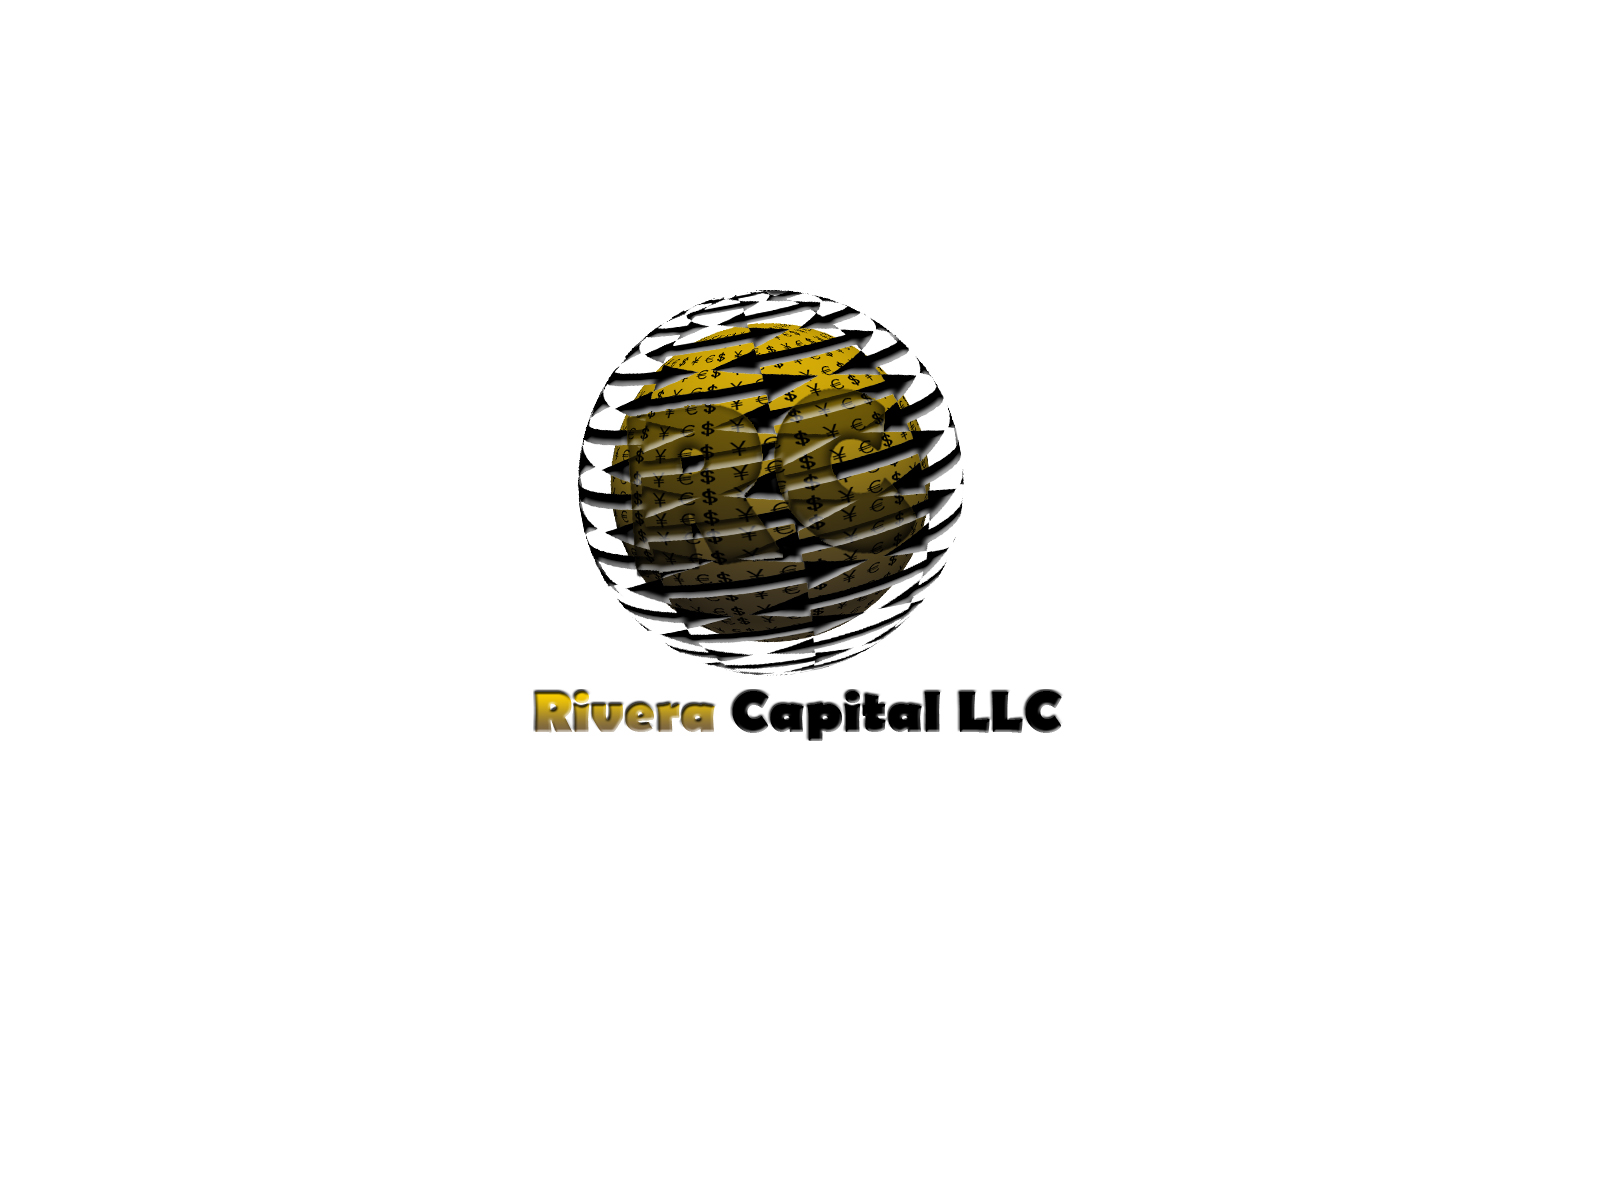 Logo Design by Mythos Designs - Entry No. 48 in the Logo Design Contest Logo Design Needed for Exciting New Company Rivera Capital LLC LLC.